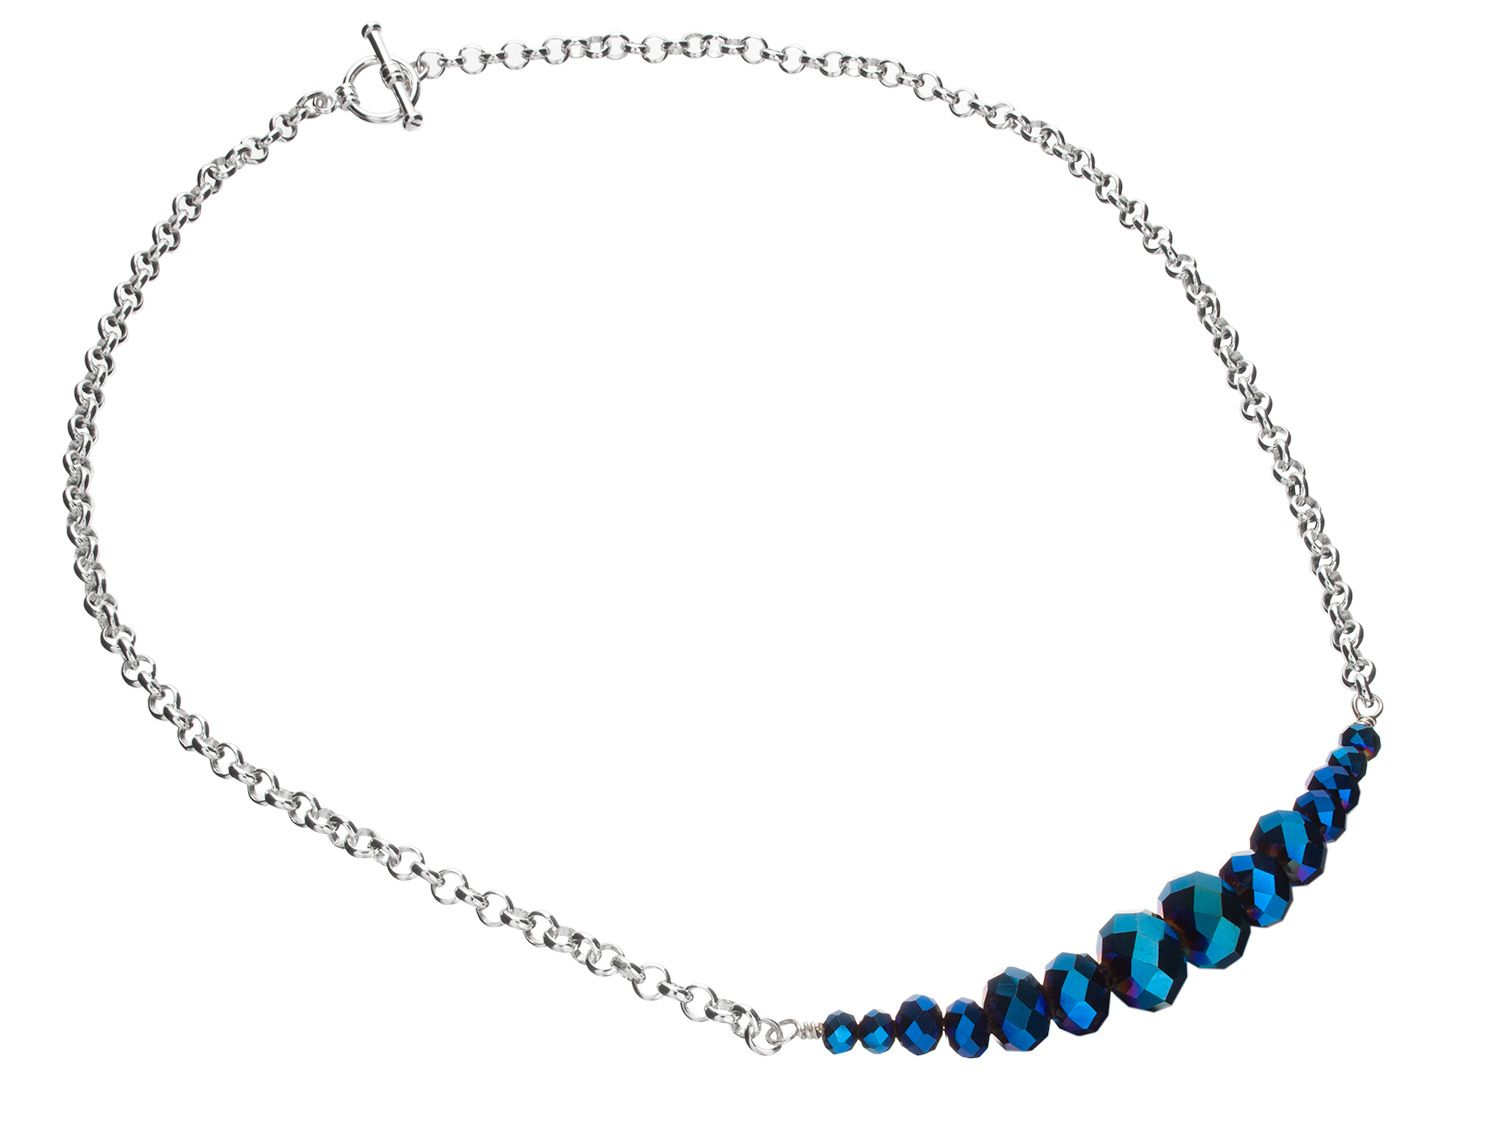 Electric Blue Necklace Oooo I See Diy In My Future